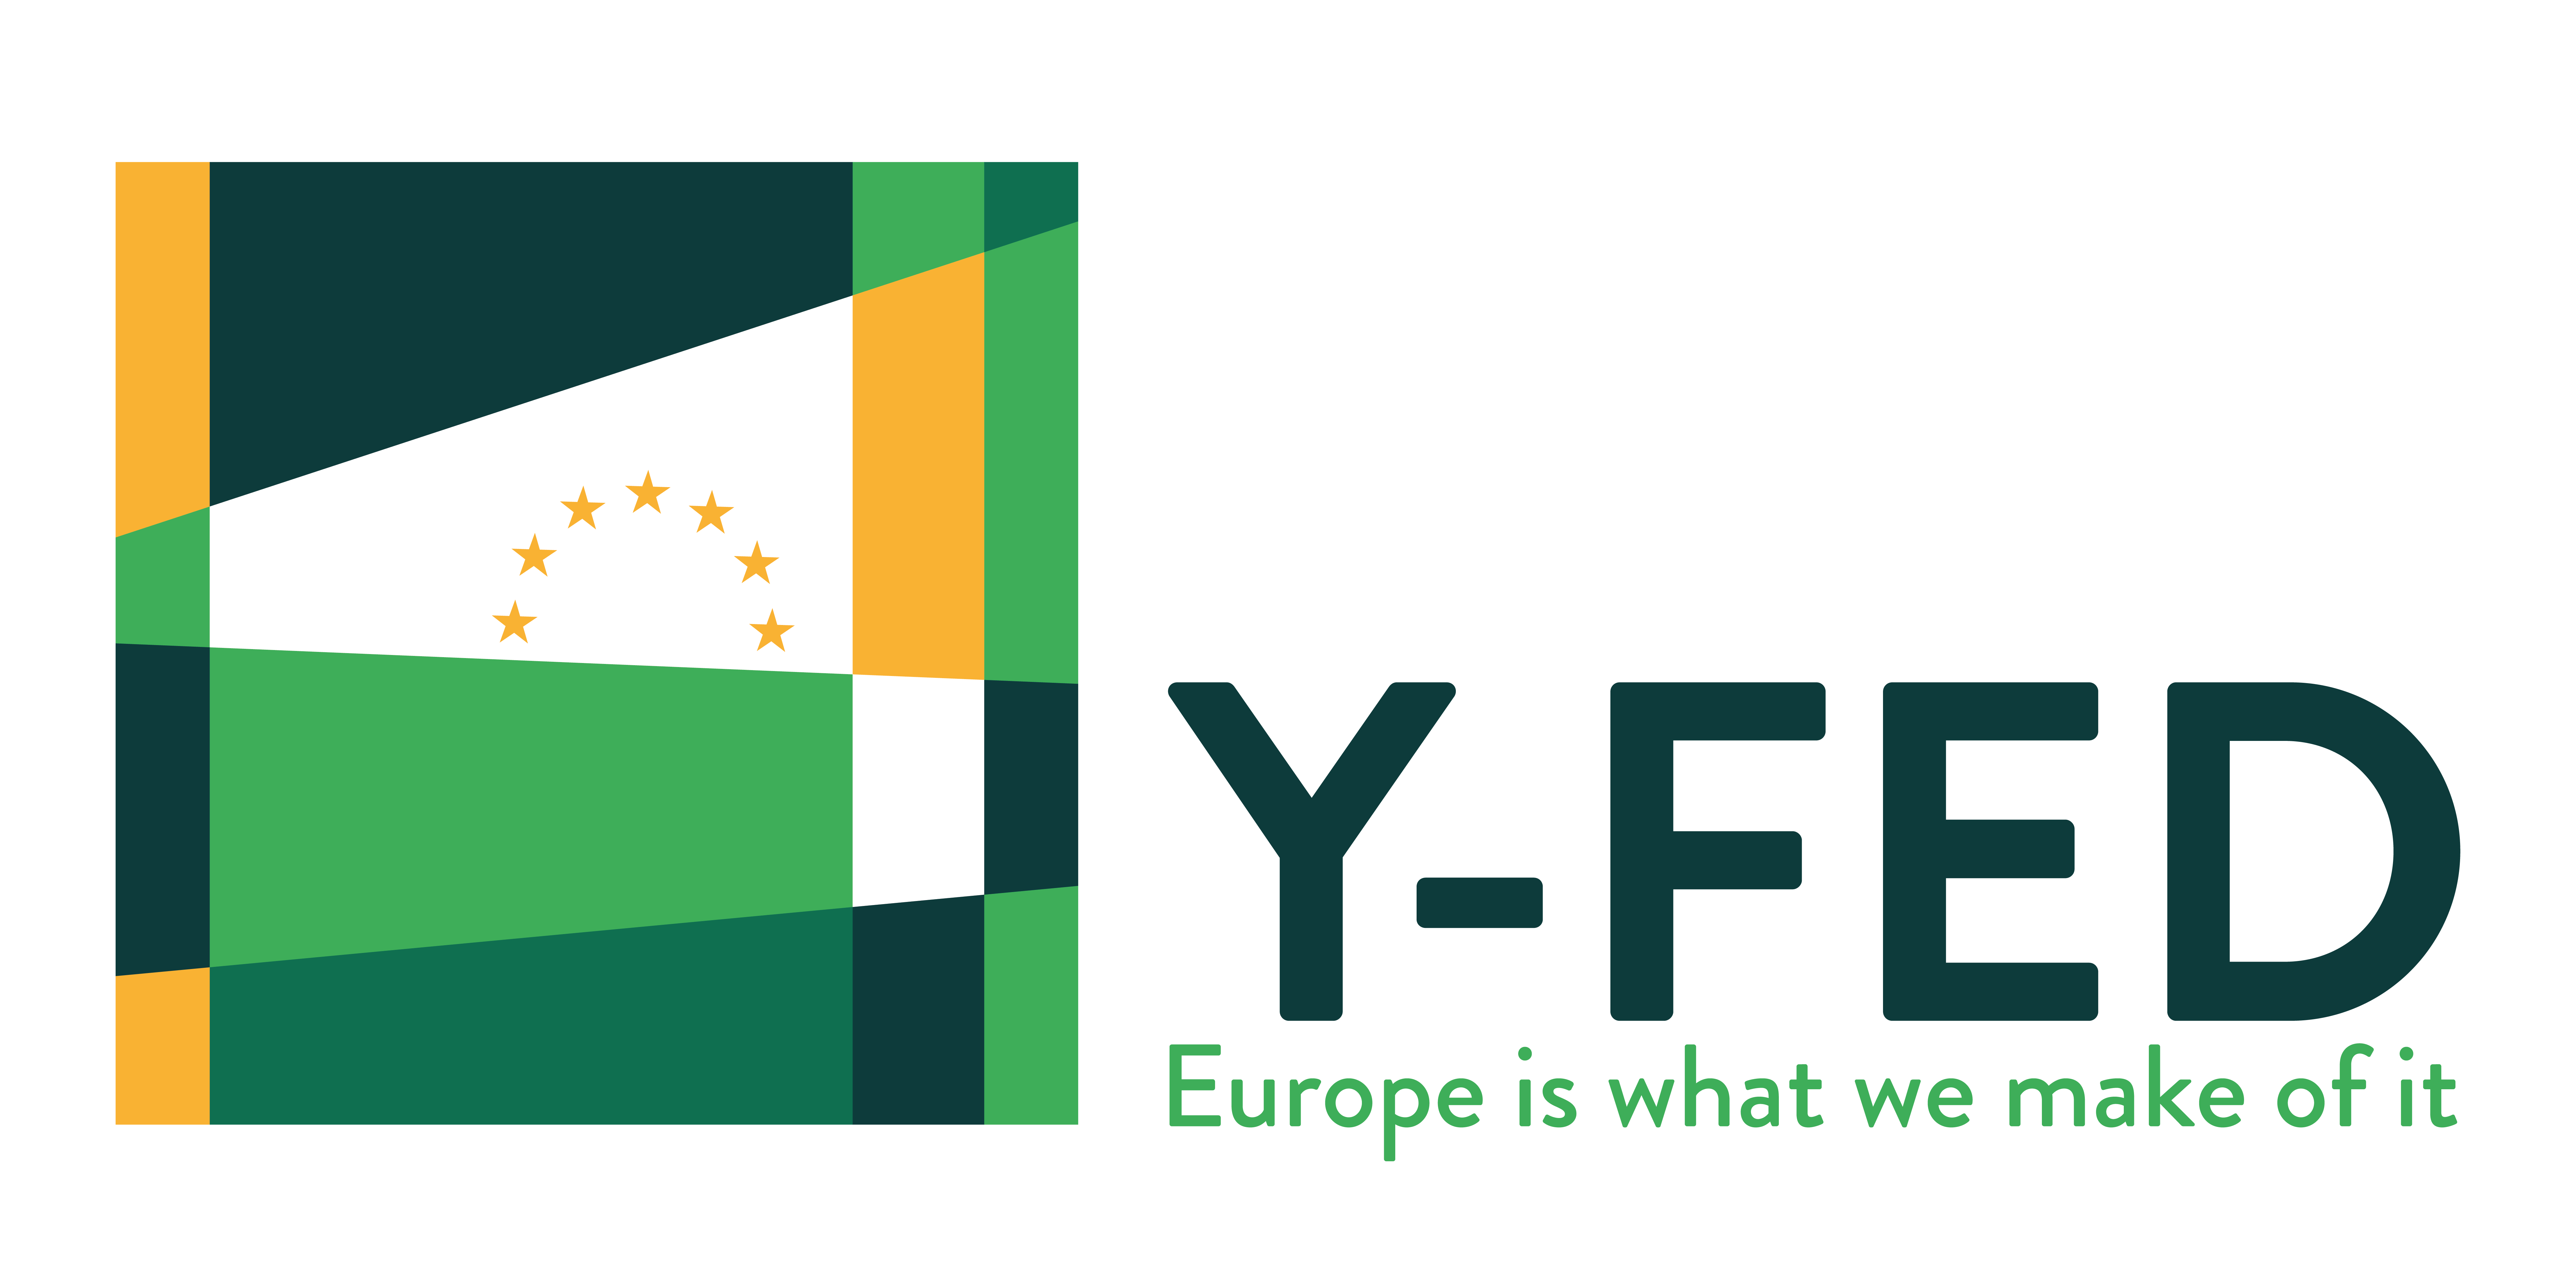 Y-FED: Europe is what we make of it